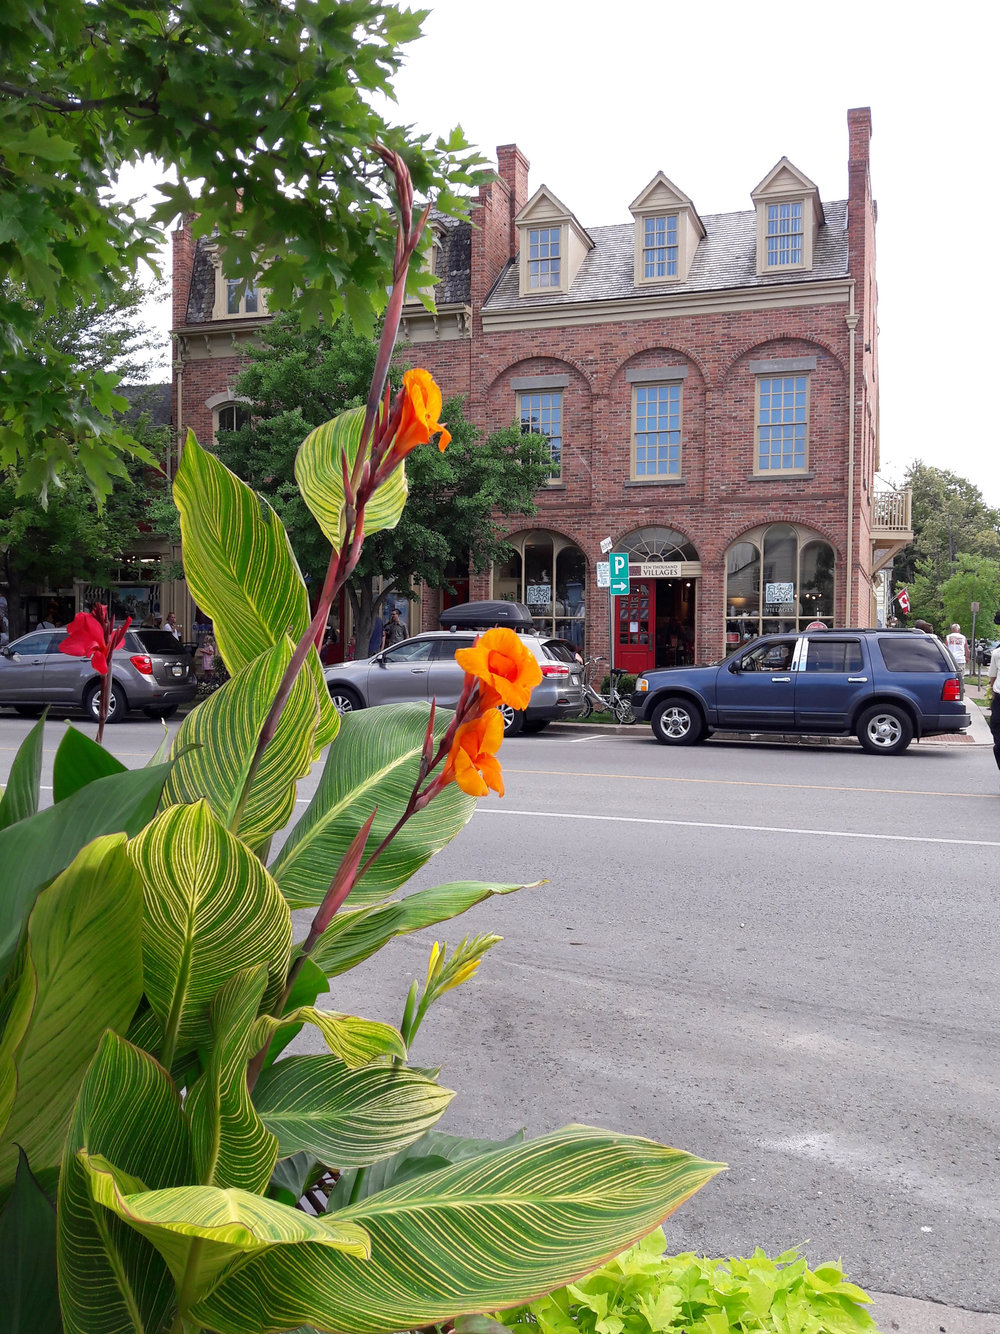 Niagara on the lake 2.jpg